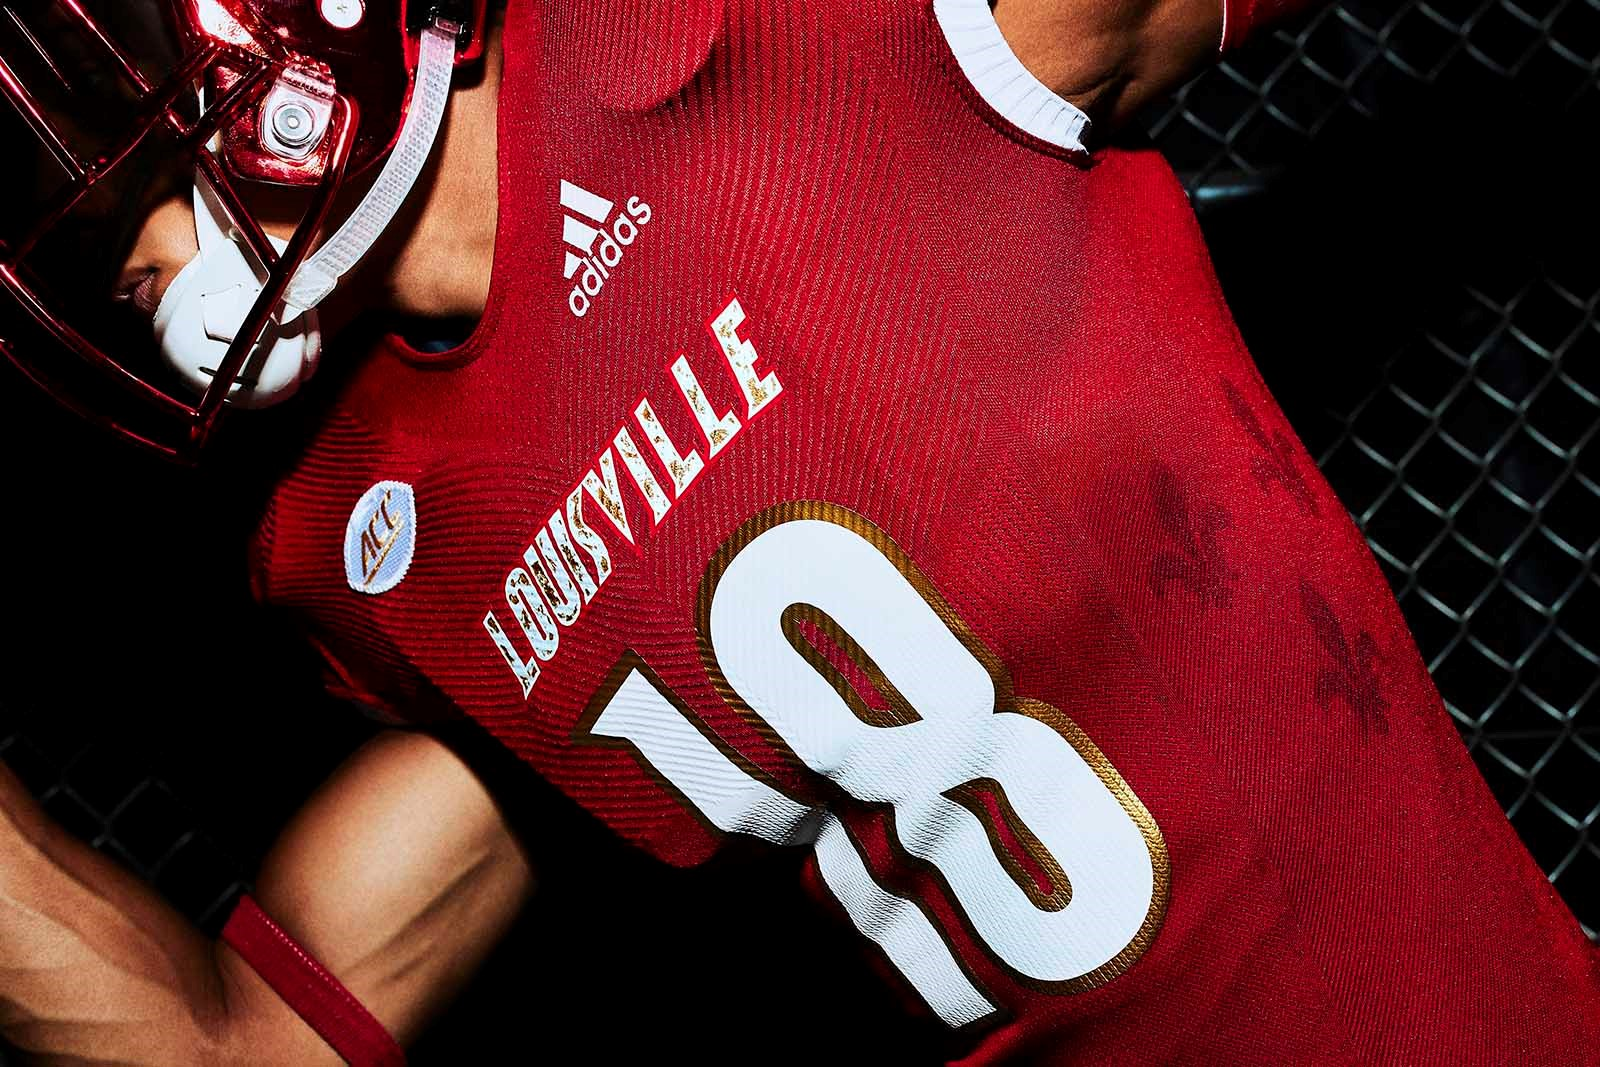 sale retailer 7bdf2 26e29 Louisville and adidas Unveil New Special Edition 'Hard Knox ...